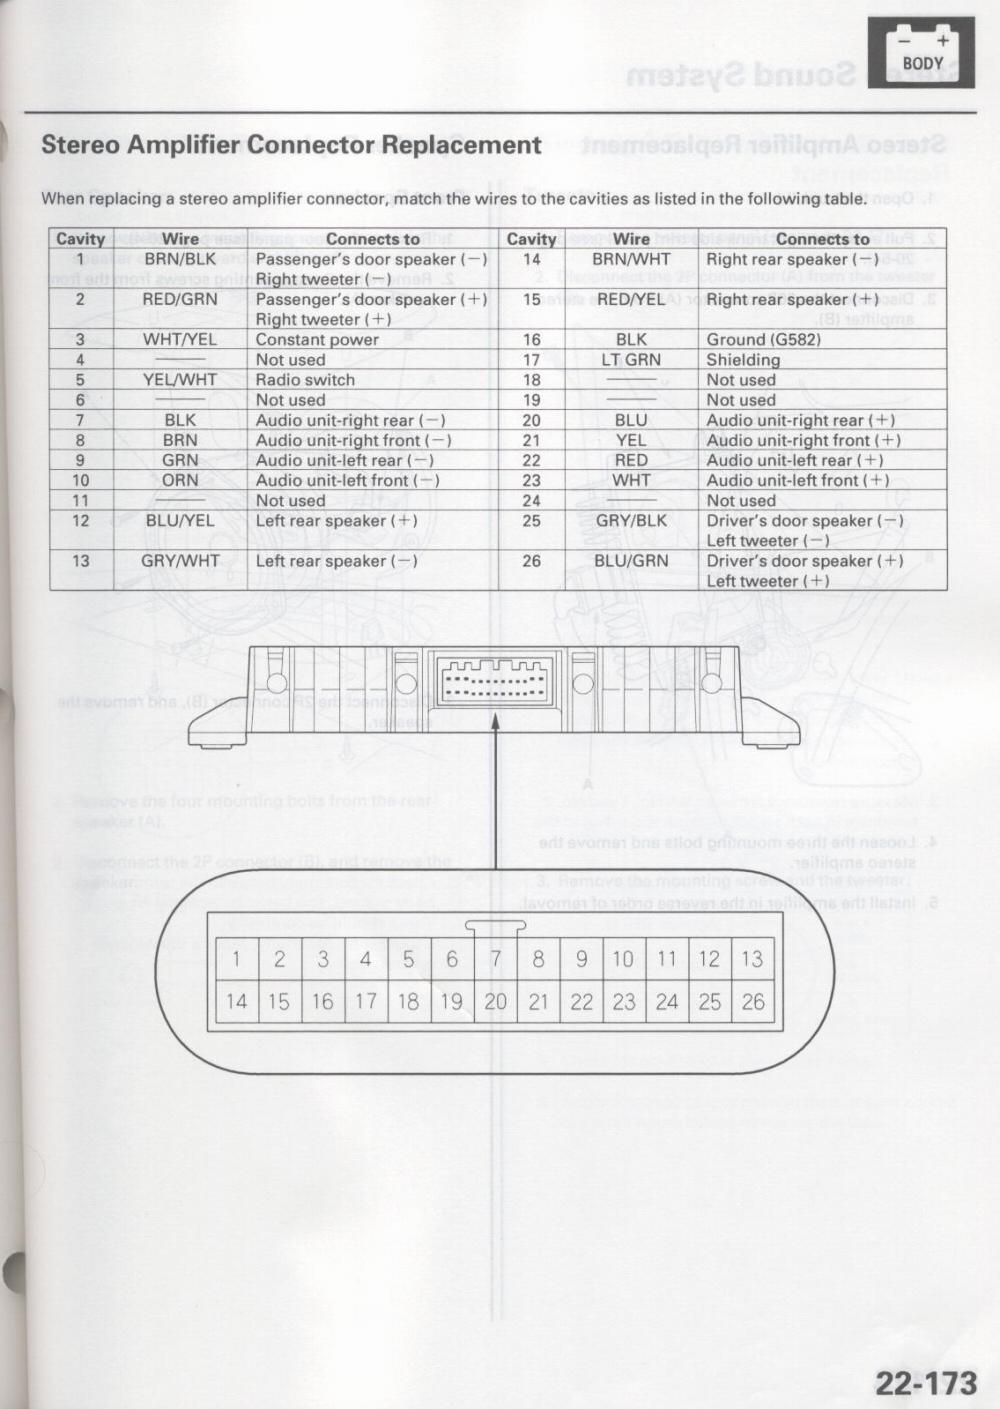 Acura 2002 TL car stereo amplifier wiring diagram harness amplifier wiring diagram readingrat net 2000 acura tl wiring diagram at reclaimingppi.co